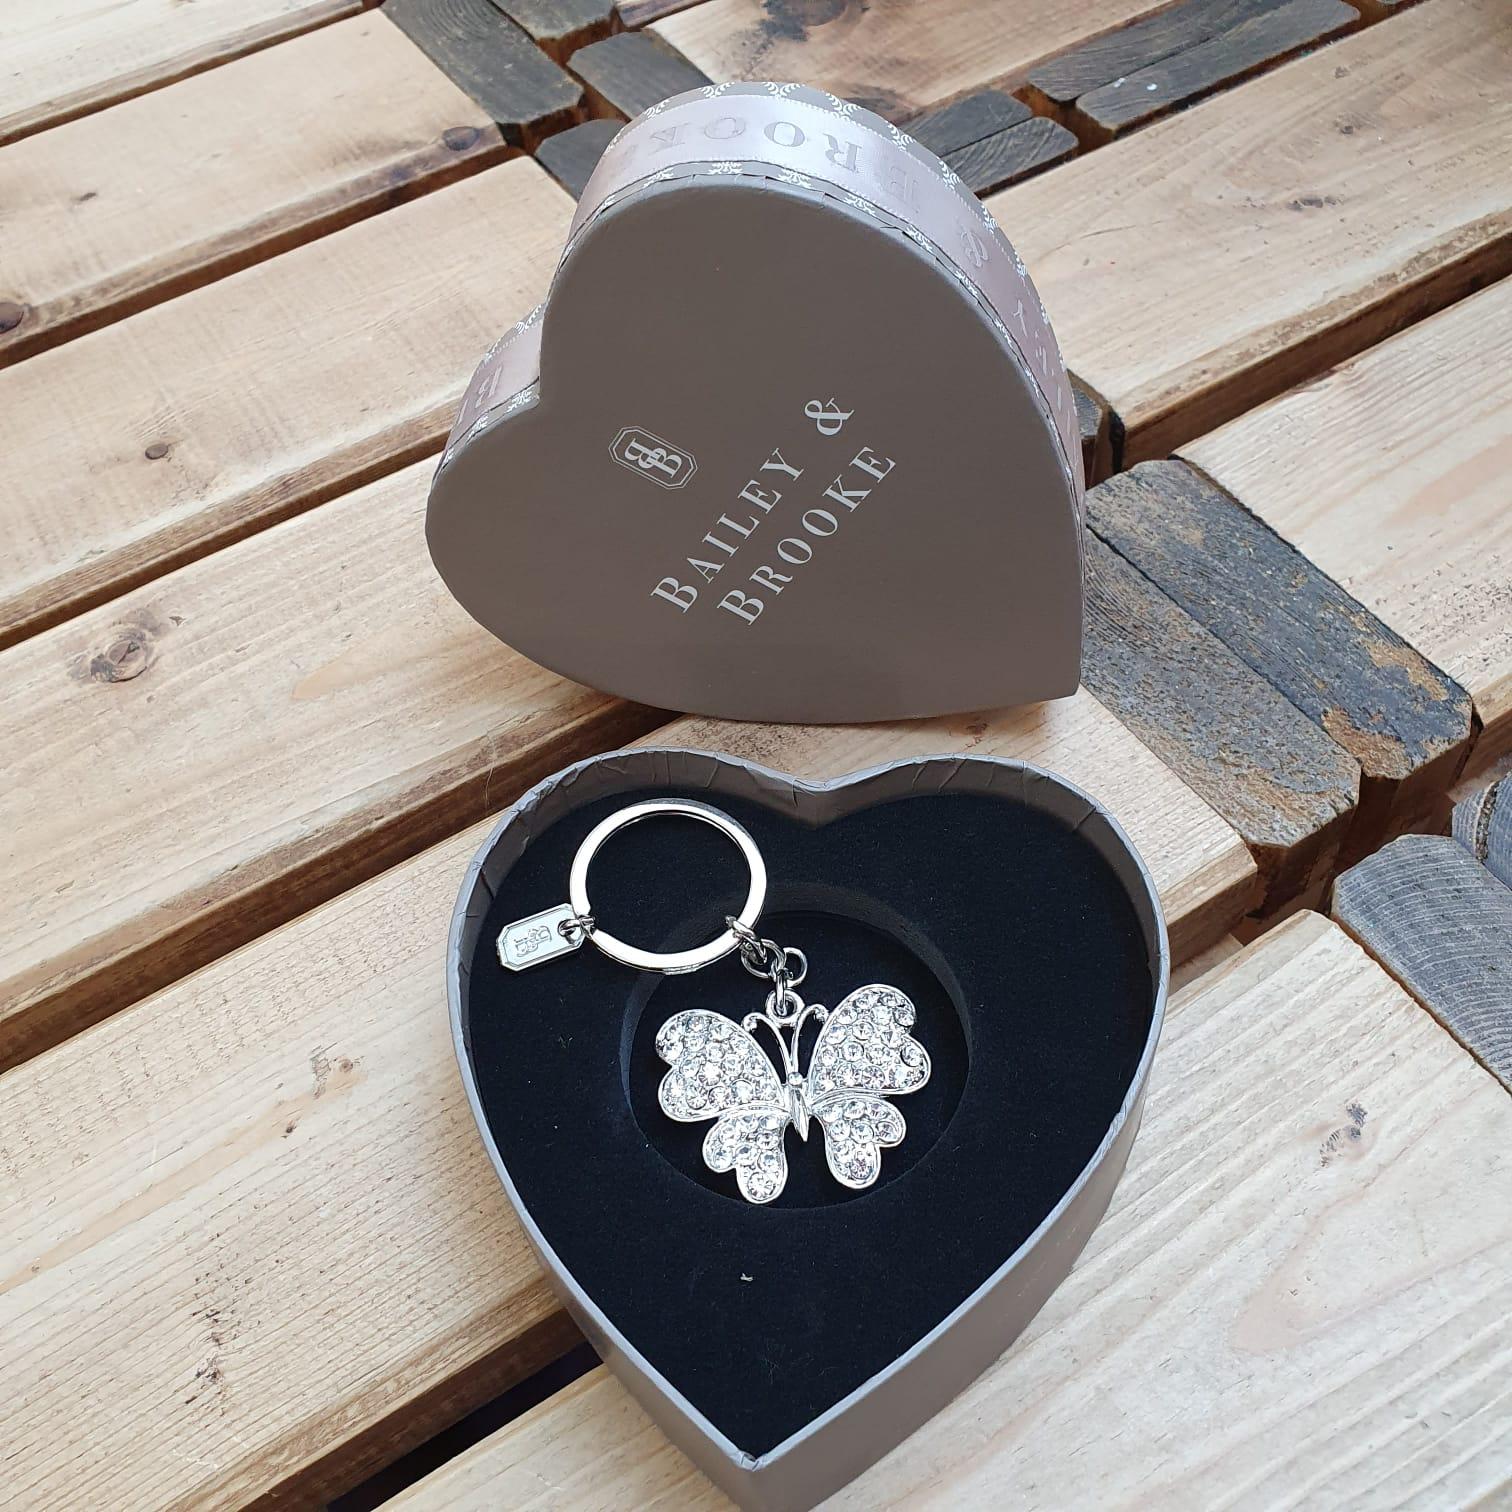 Sparkle Butterfly Keyring by the lovely brand Bailey & Brooke.   Add some sparkle to your keys with a Luxury hanging keyring. Beautifully presented in a Bailey & Brooke gift box. It will make a wonderful gift.